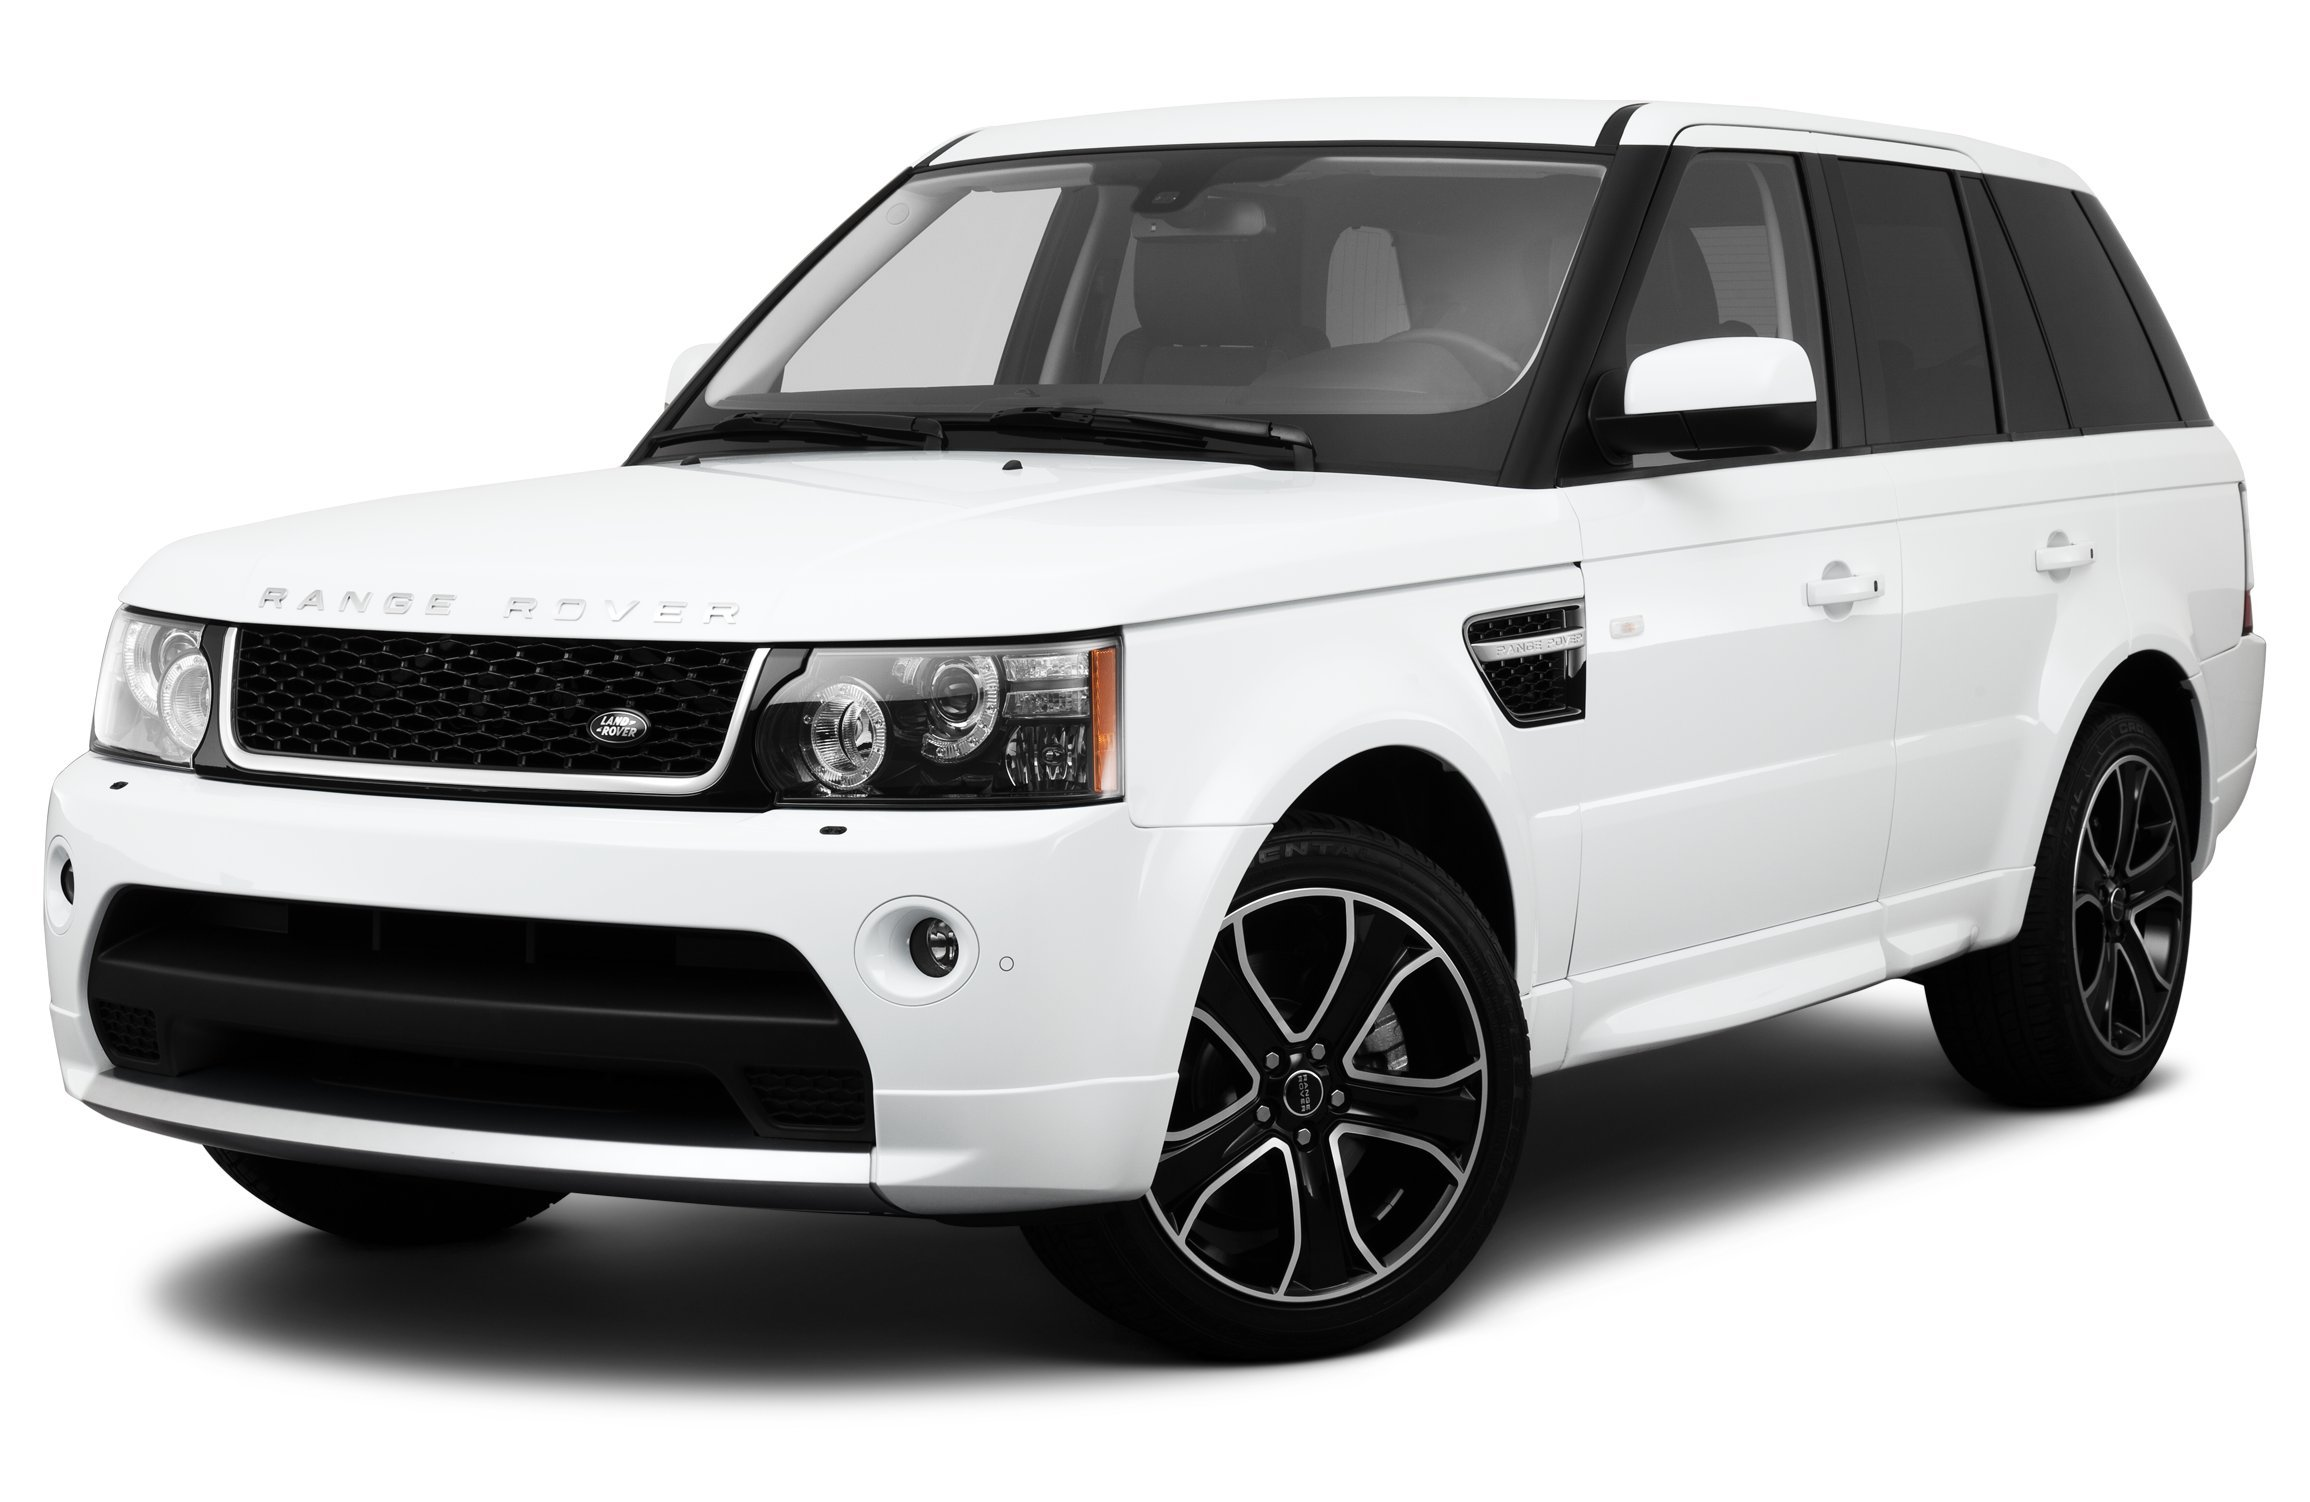 2013 land rover range rover sport reviews images and specs vehicles. Black Bedroom Furniture Sets. Home Design Ideas